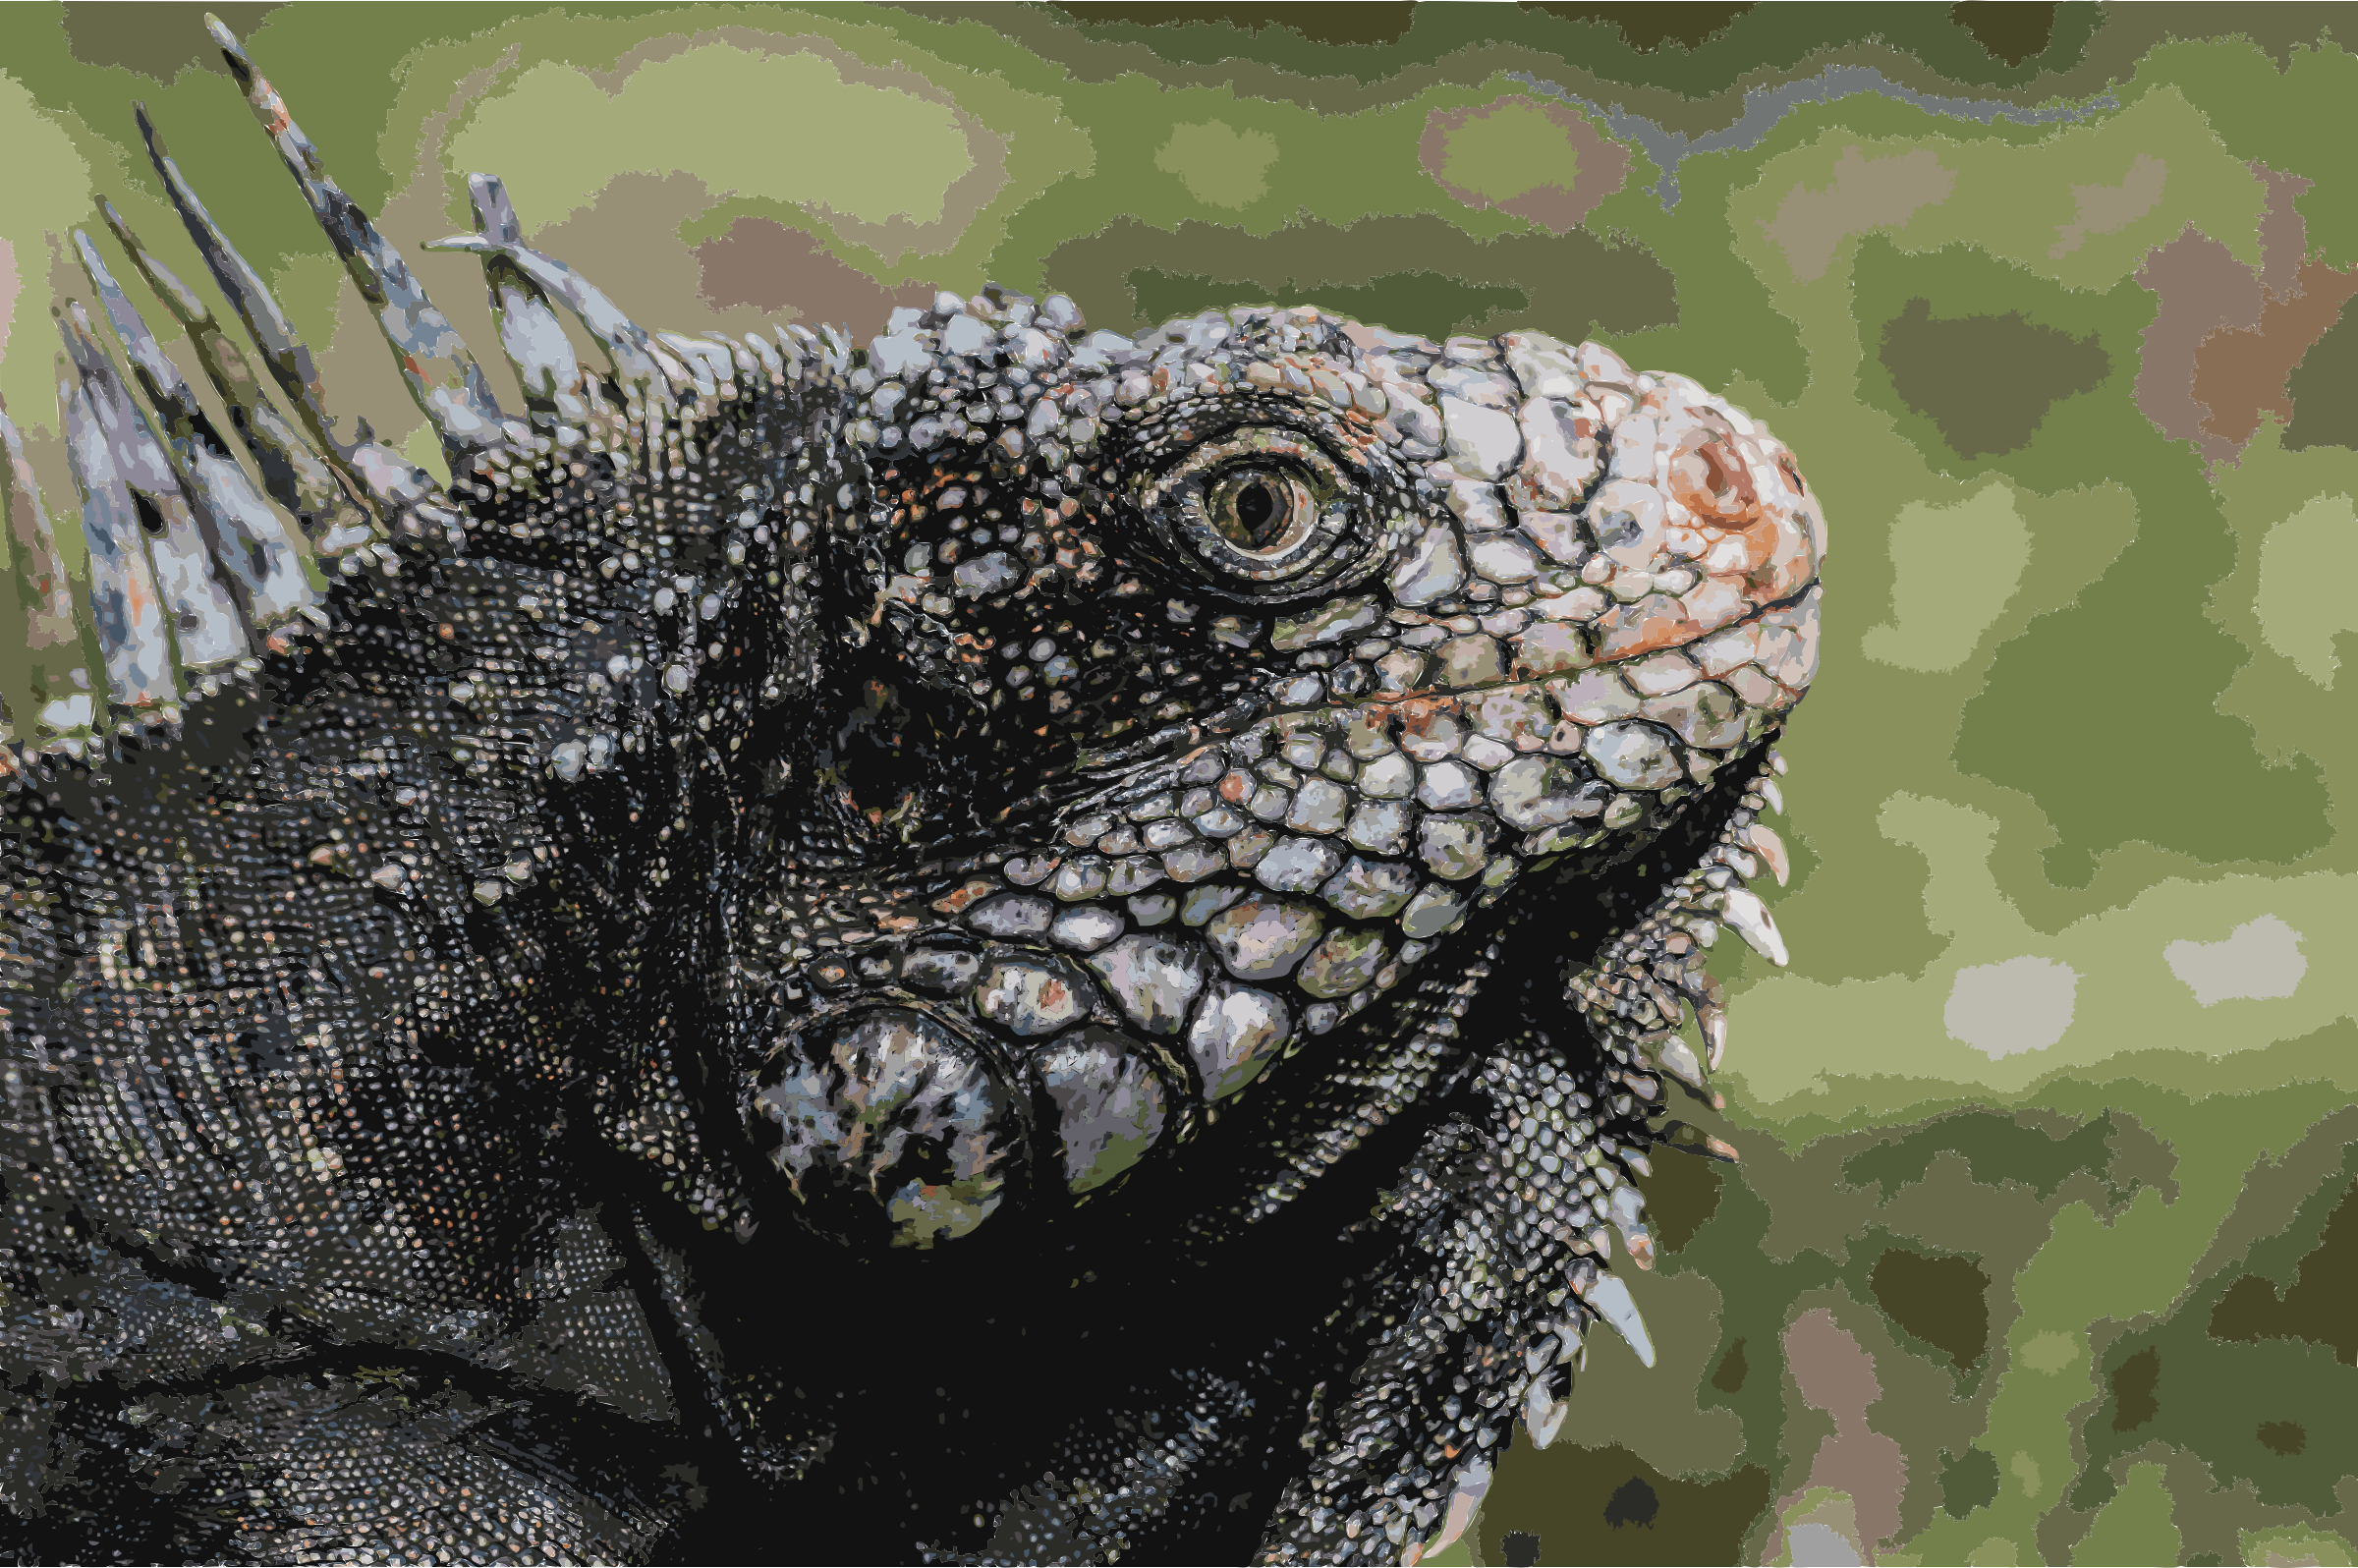 Iguanidae head from Venezuela by 5mee4d+cgehjn4ybt98o